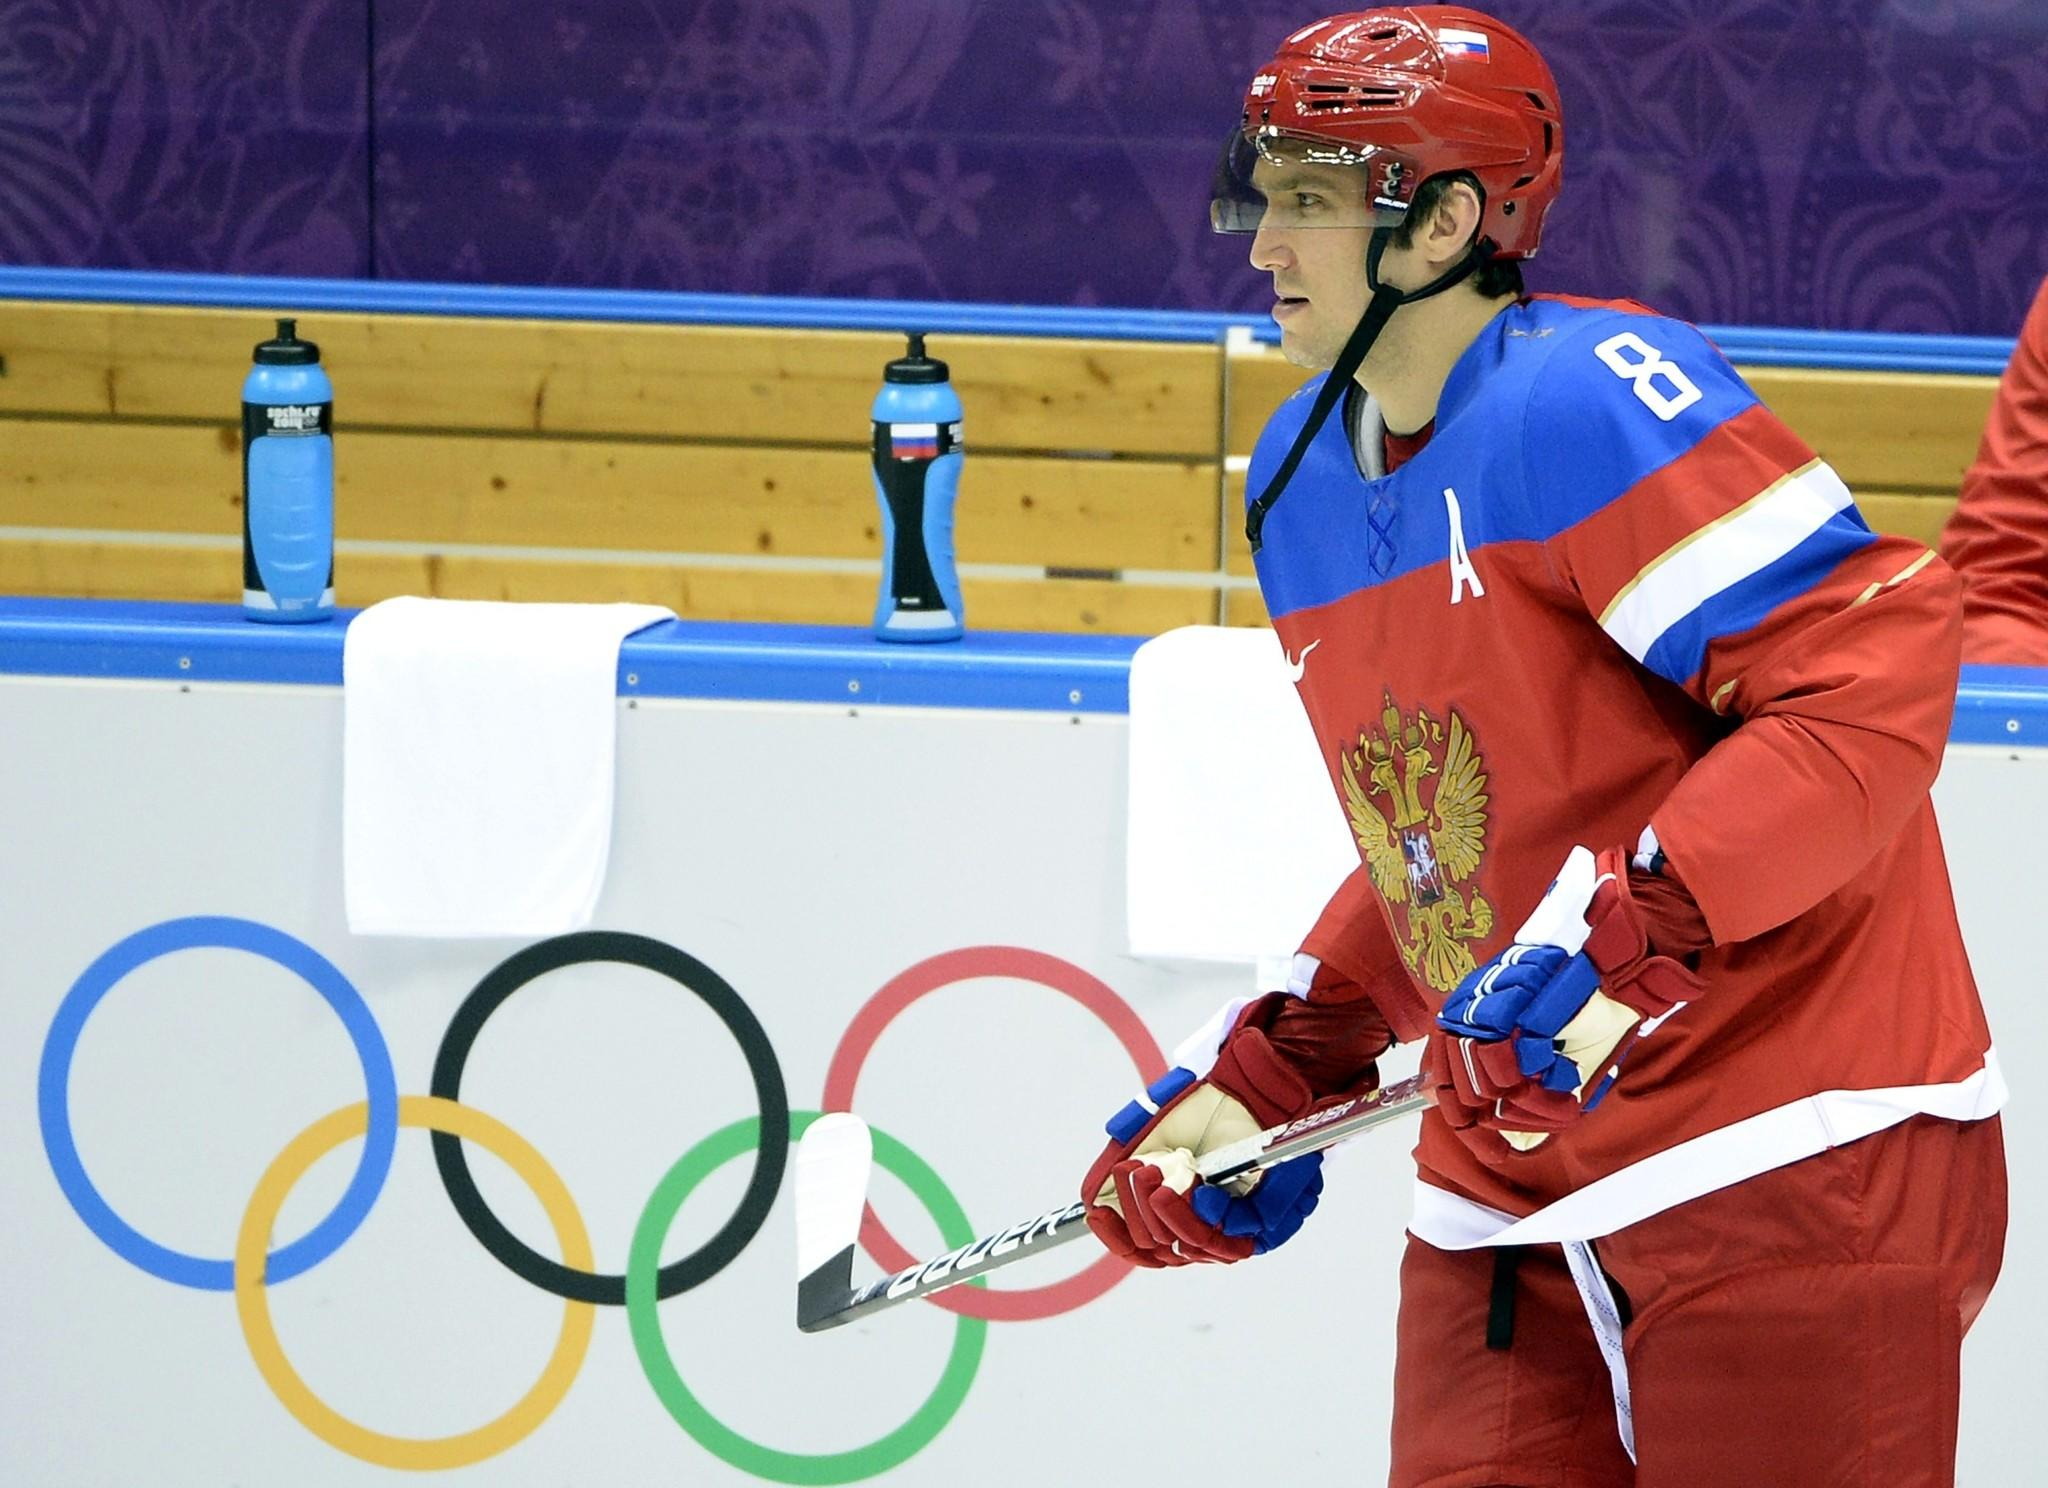 Alexander Ovechkin and his Russian team will face the United States on Saturday at the Bolshoy Arena.